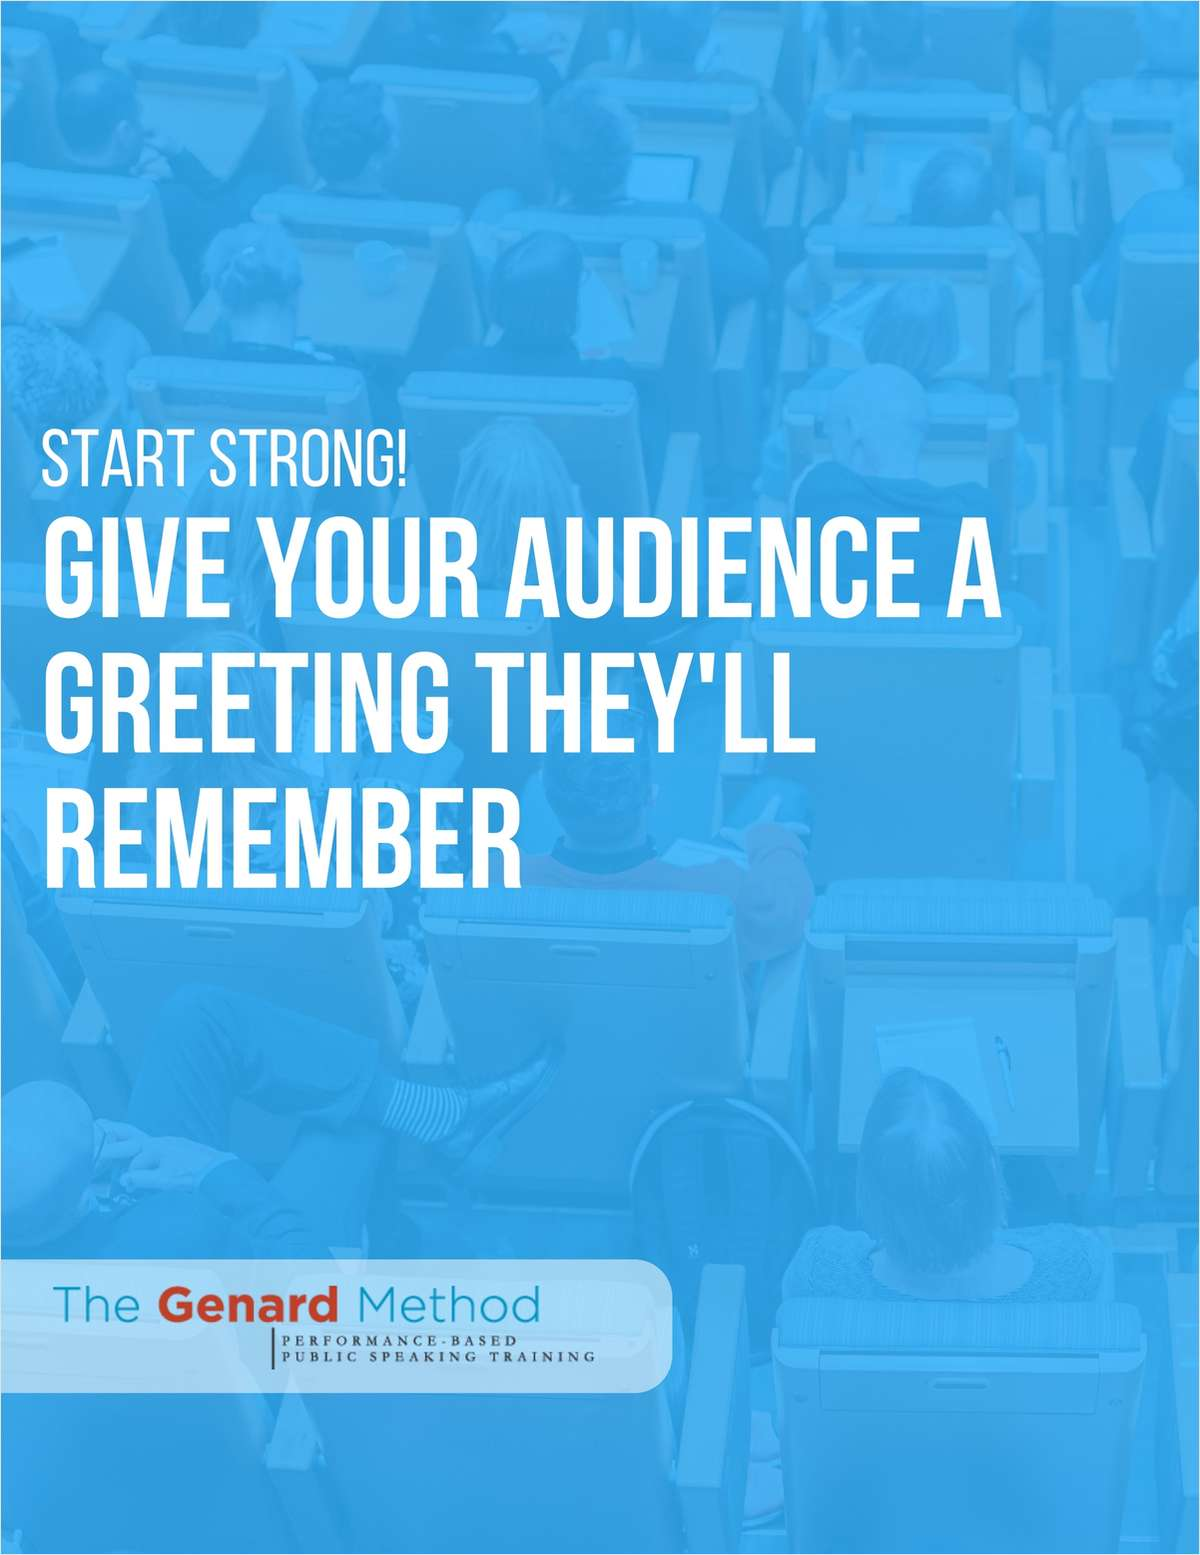 Start Strong! Give Your Audience a Greeting They'll Remember